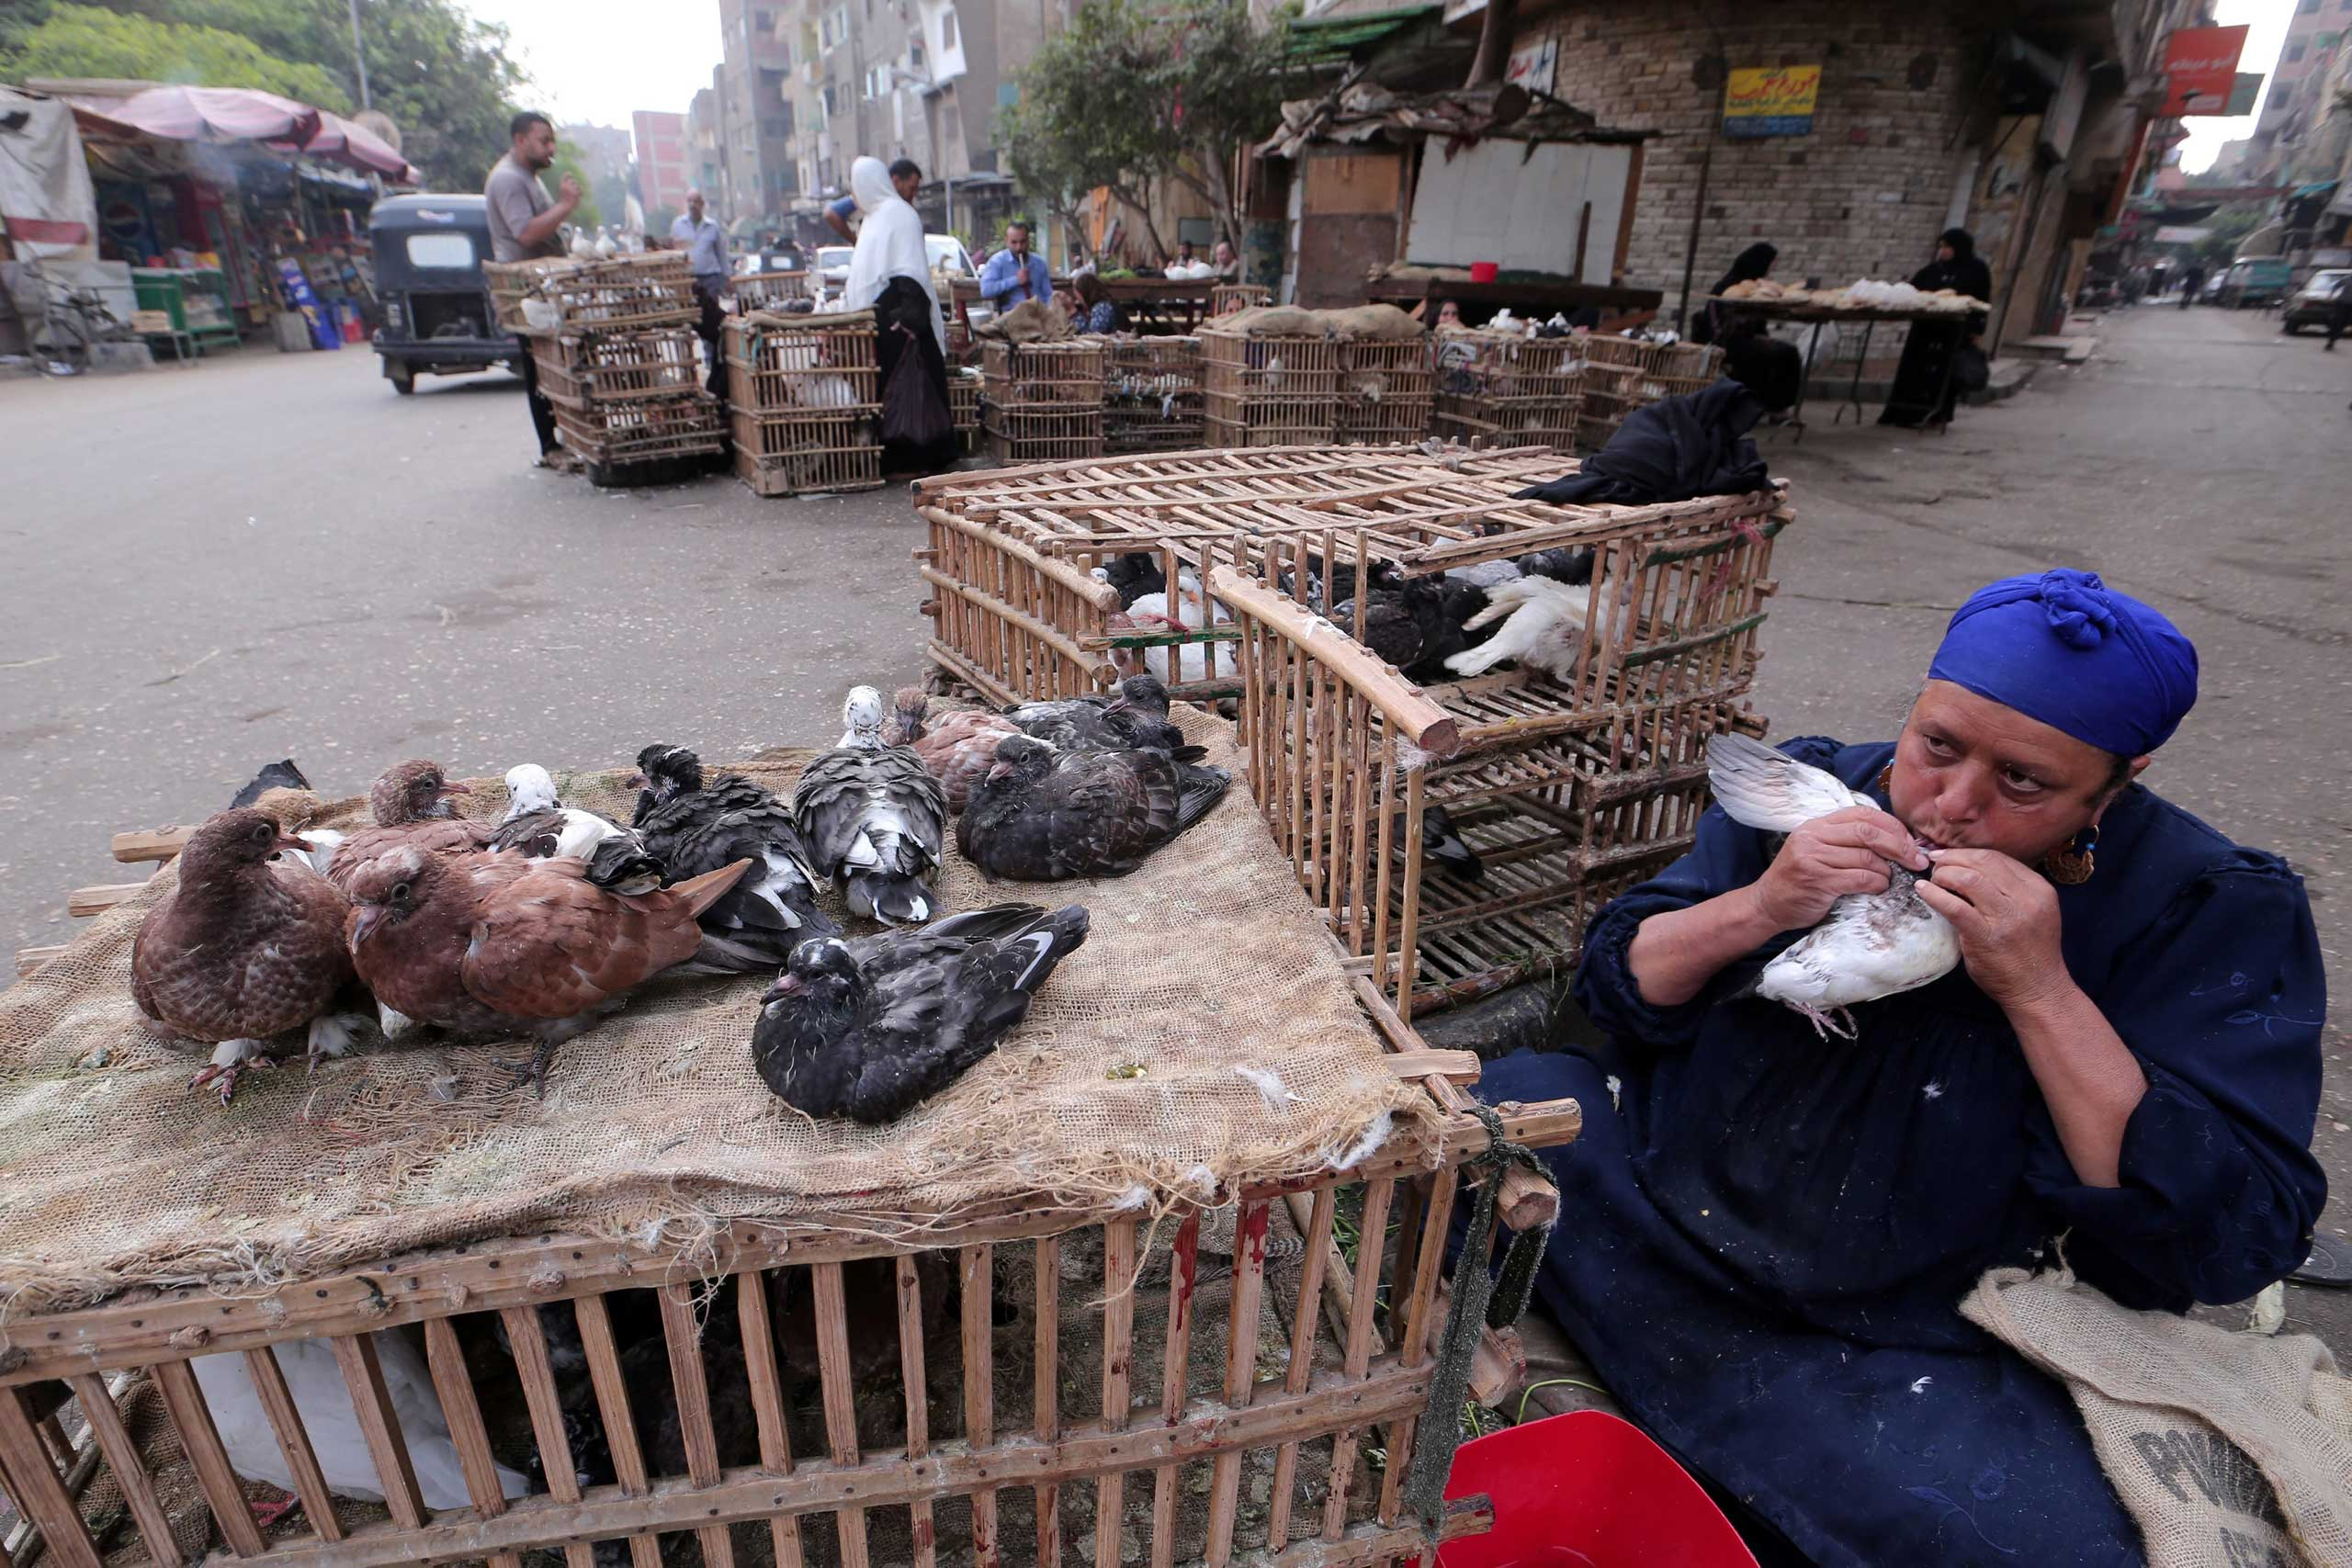 A poultry merchant feeds a pigeon from her mouth in a popular market in Cairo, Egypt, Nov. 19 2014.